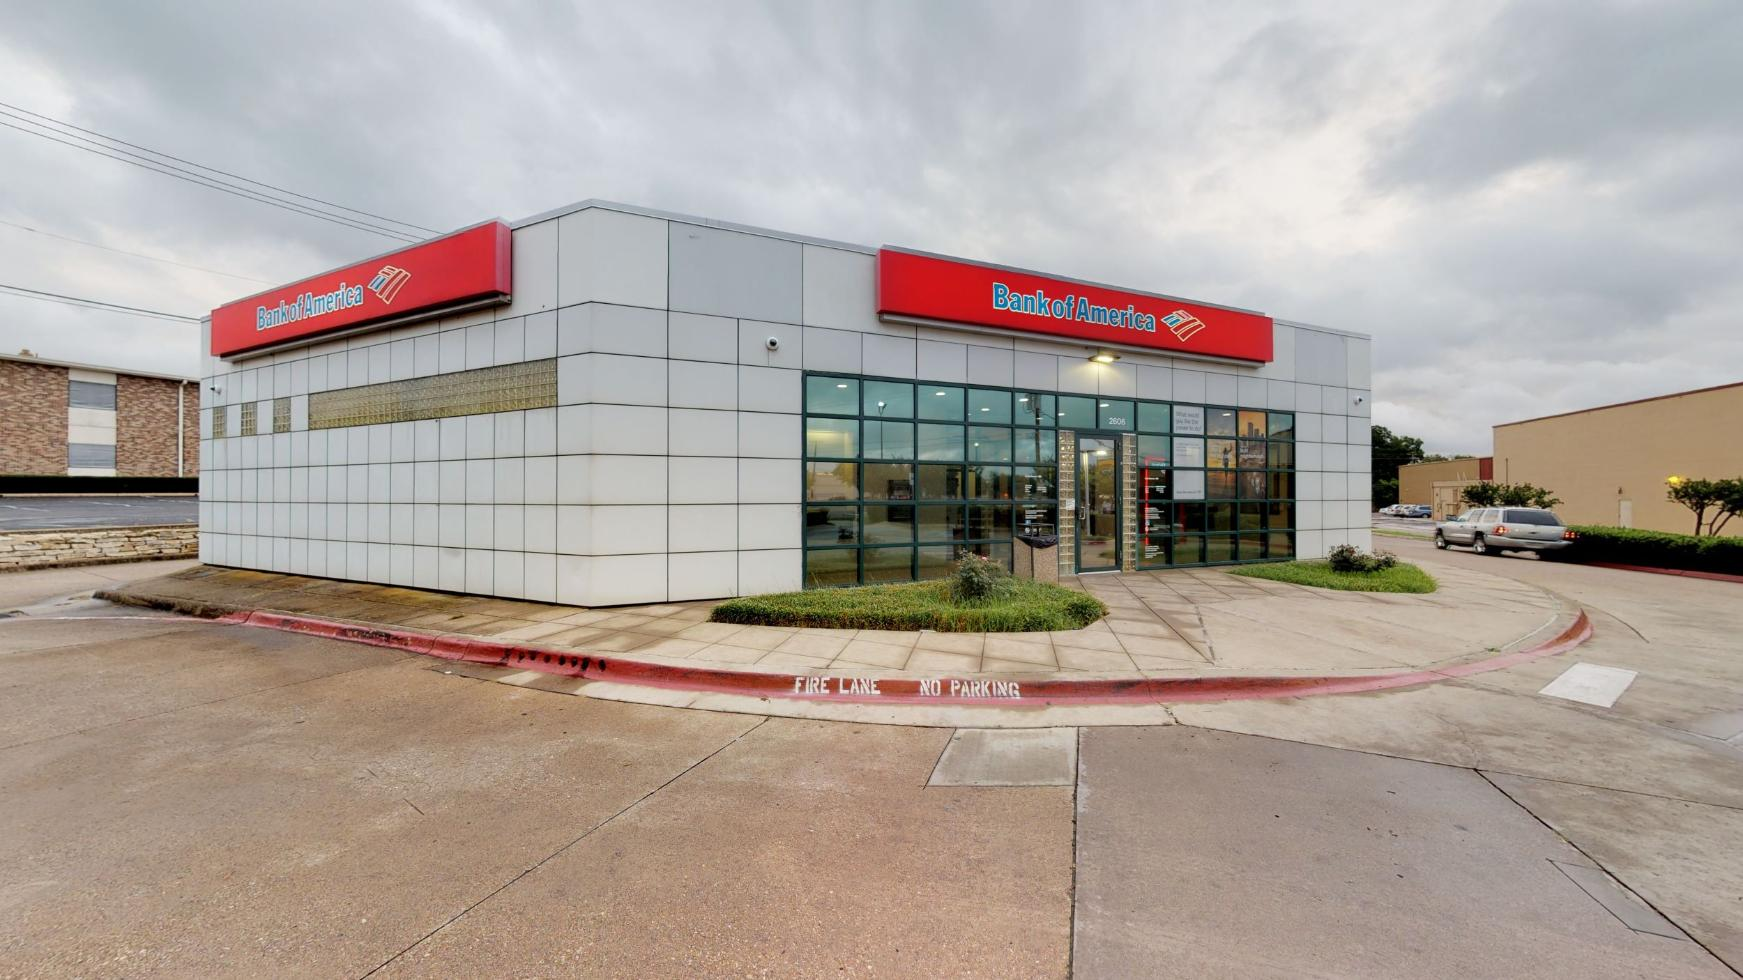 Bank of America financial center with drive-thru ATM | 2606 Gus Thomasson Rd, Dallas, TX 75228